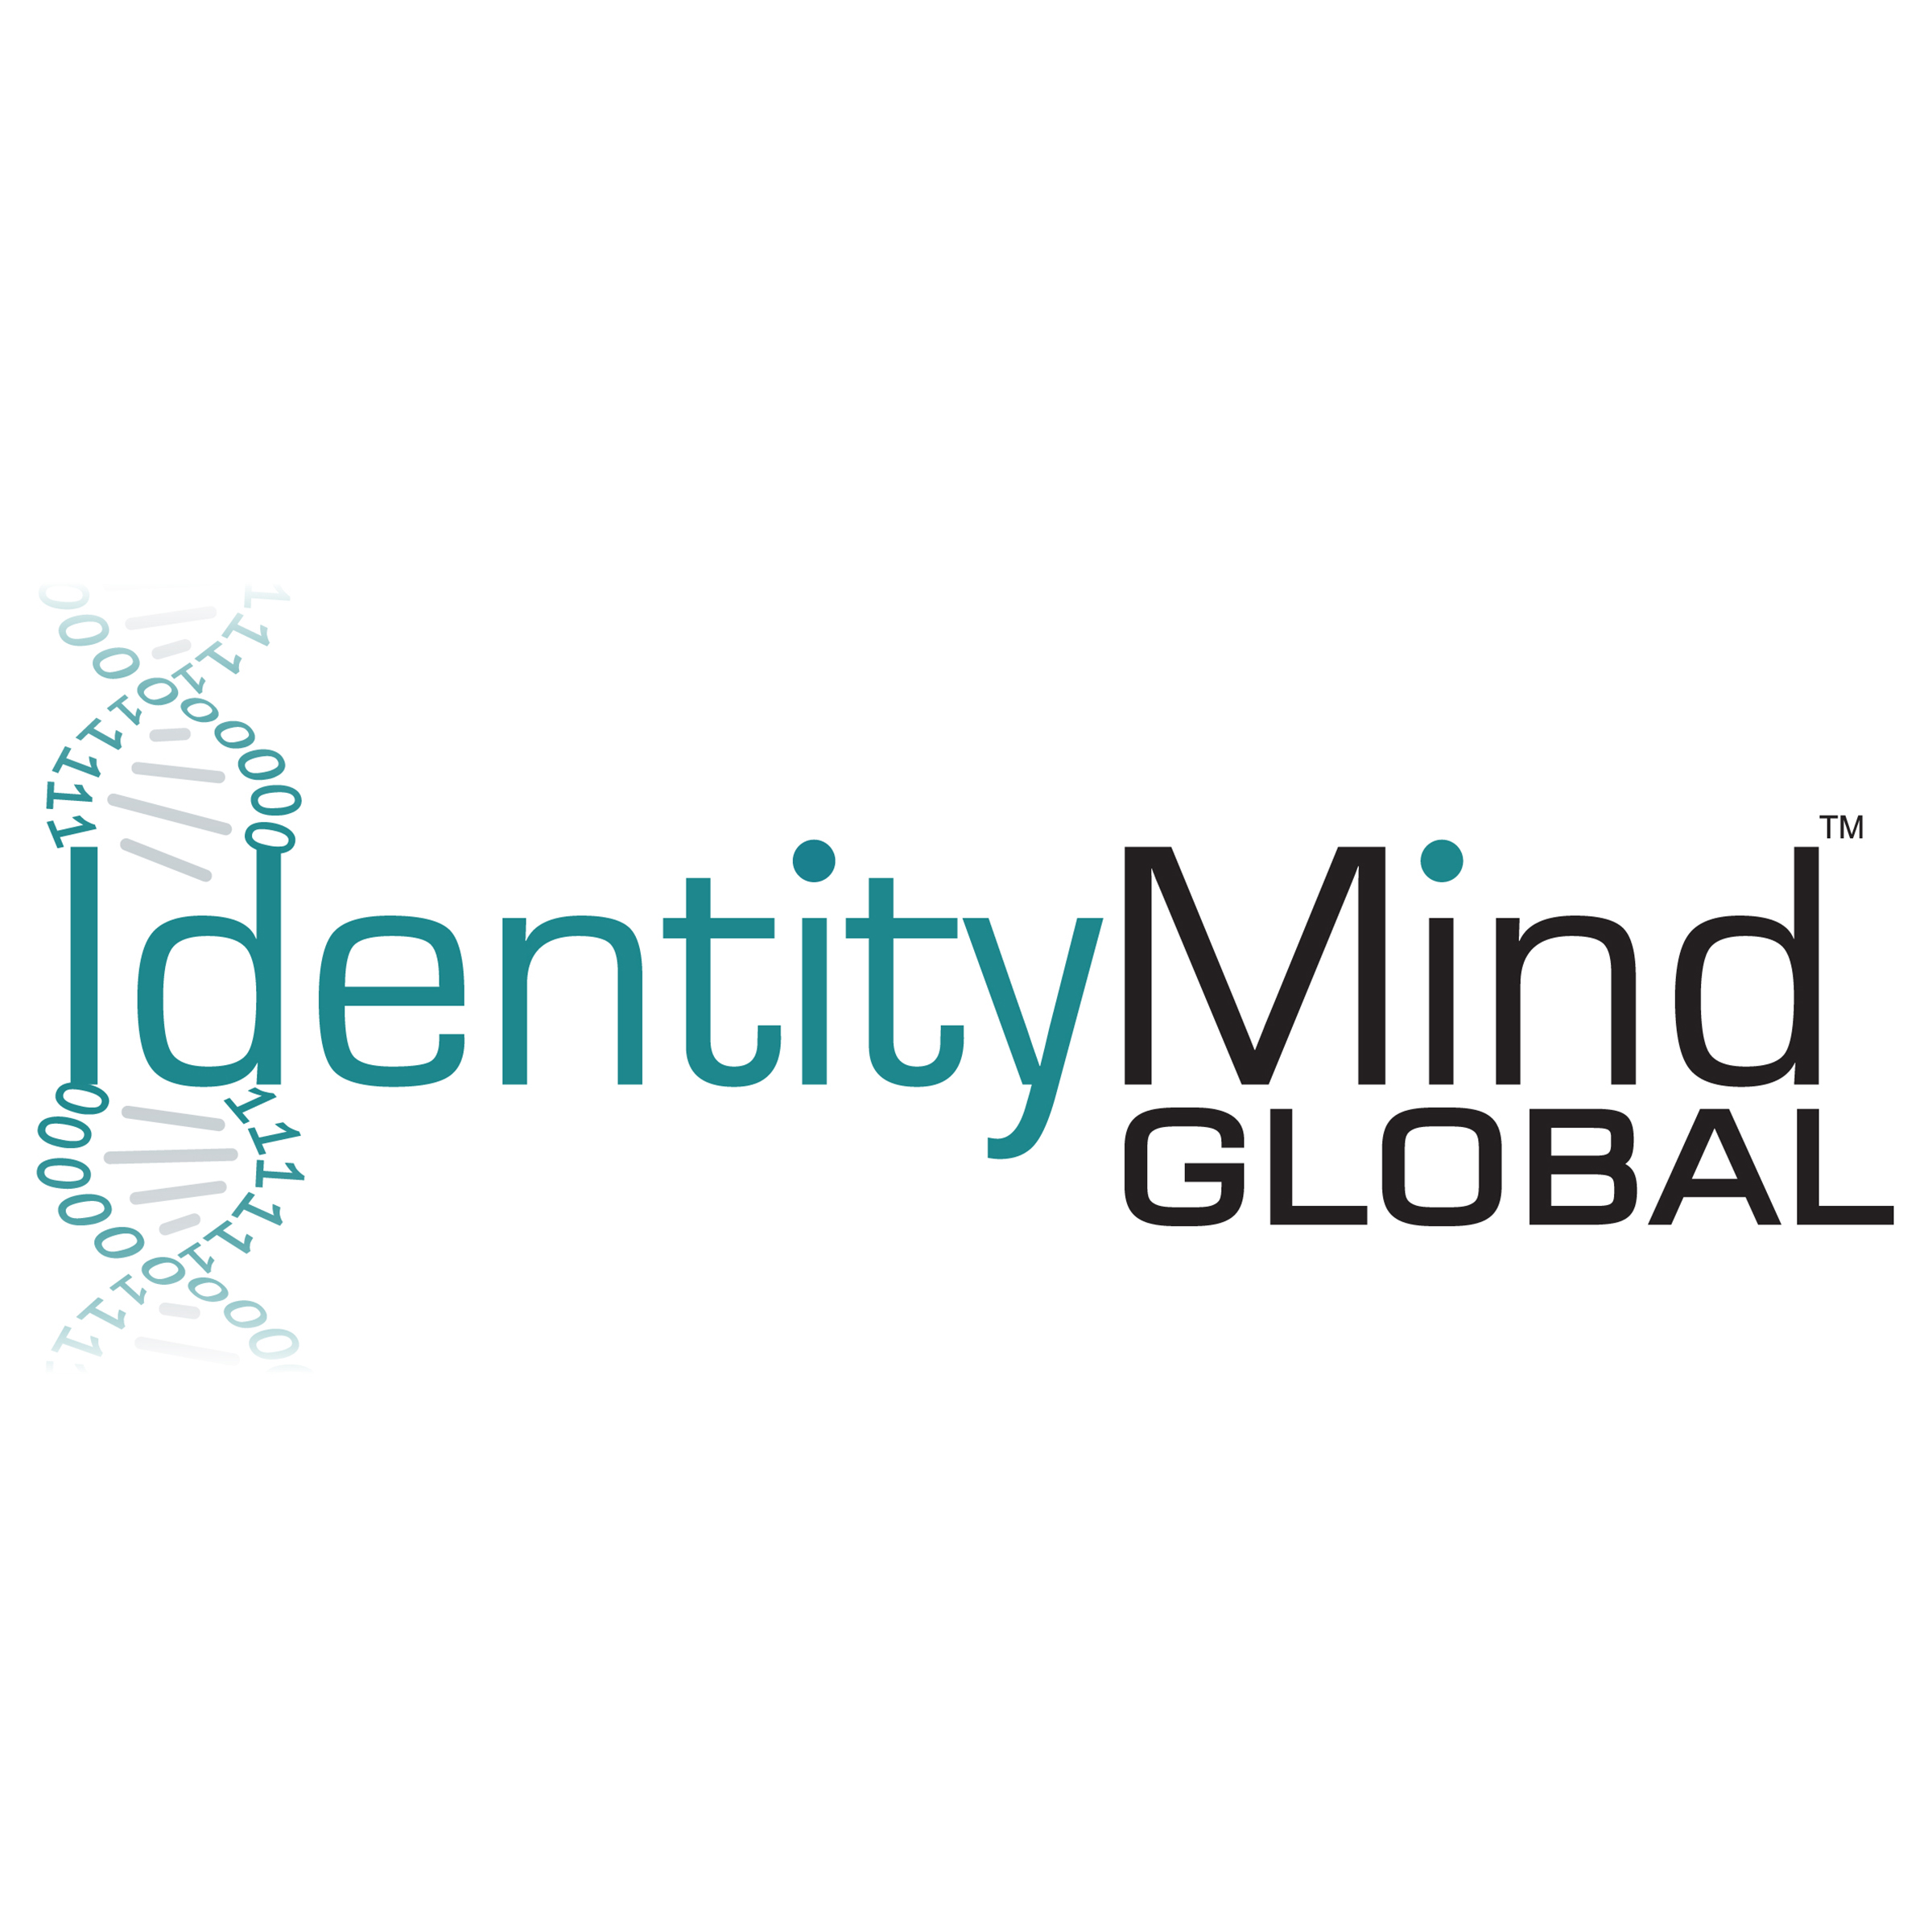 IdentityMind Global Closes Oversubscribed Financing Round